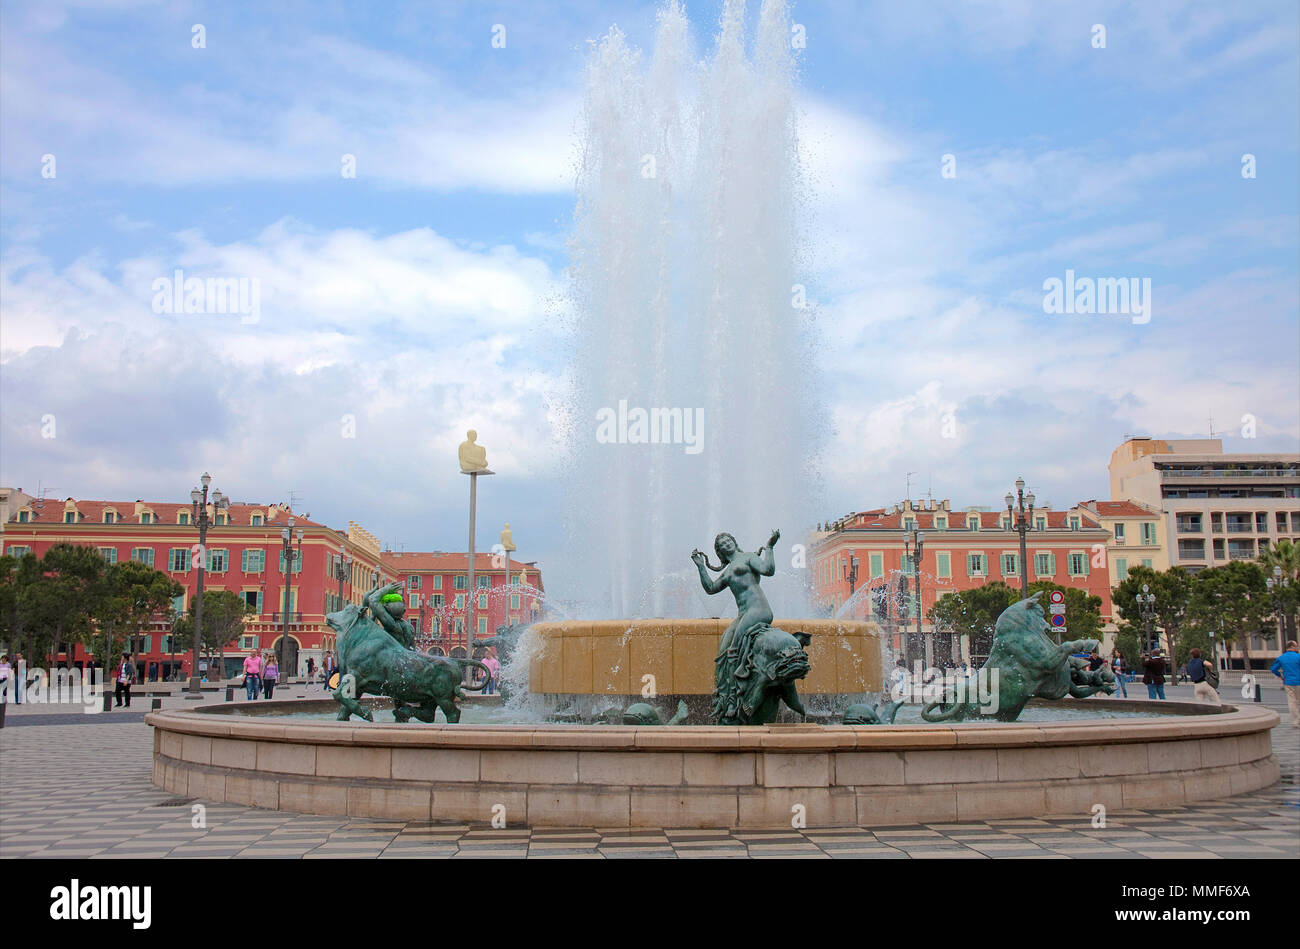 Fountain with sculptures at the historic square Place Masséna, Nice, Côte d'Azur, Alpes-Maritimes, South France, France, Europe - Stock Image